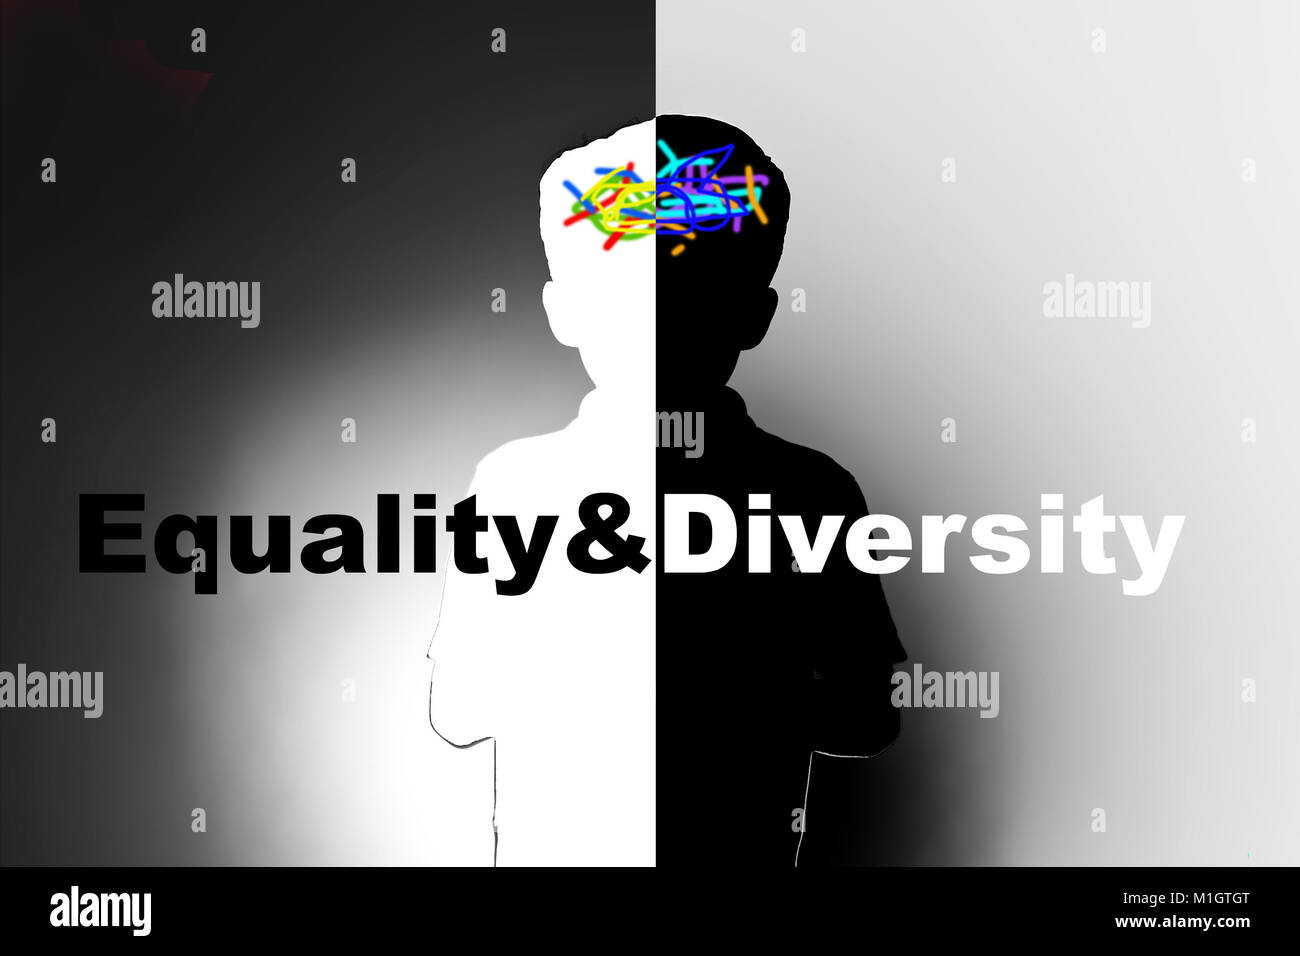 equality and diversity in children, education and racial discrimination - Stock Image